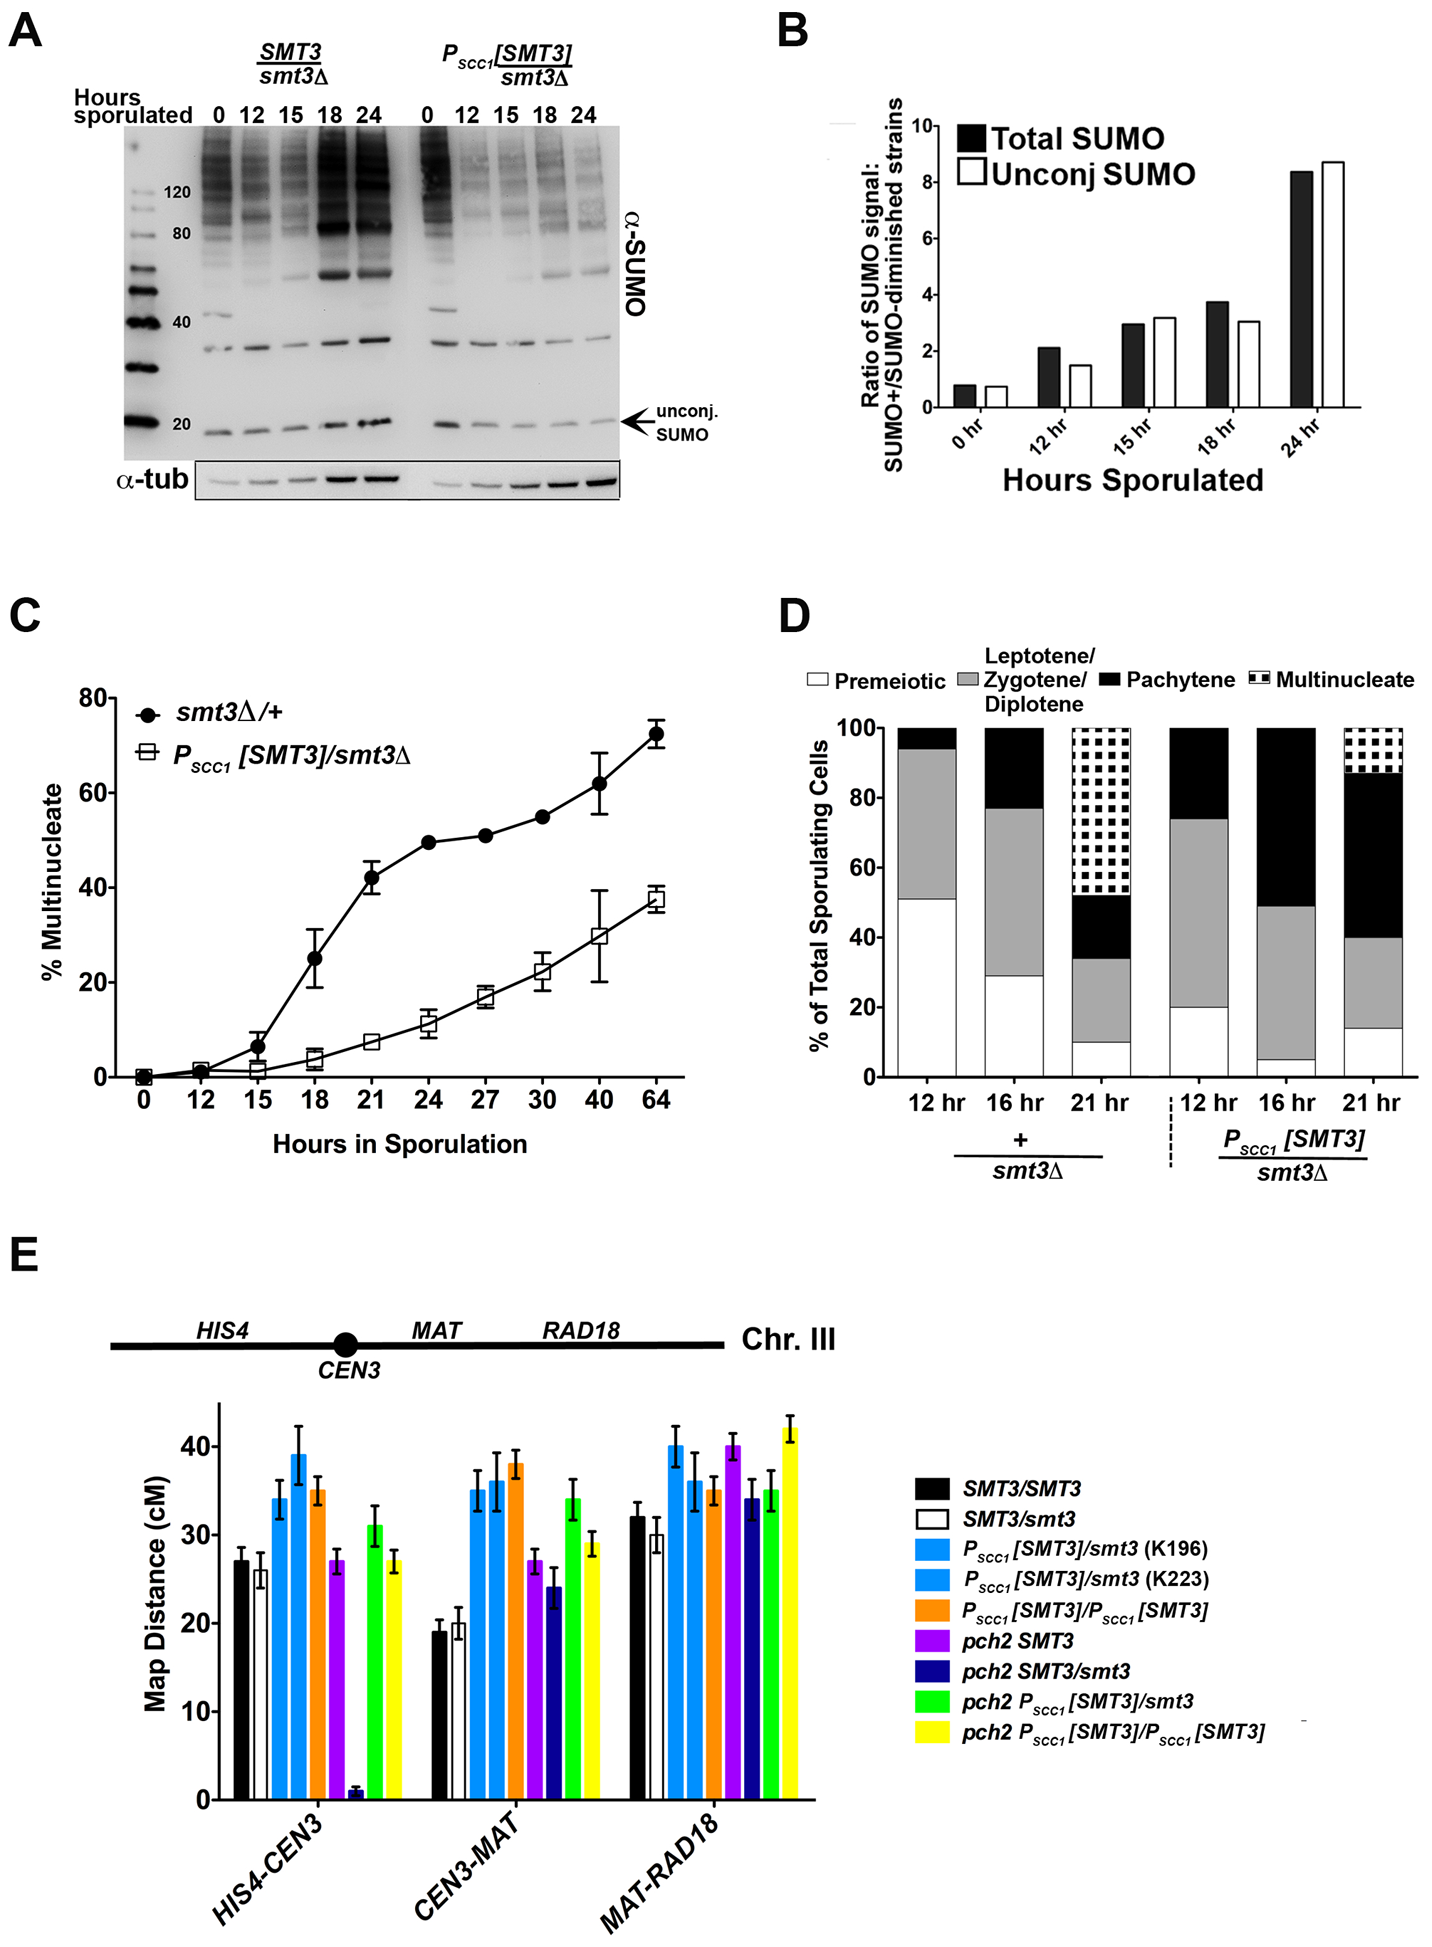 SUMO-diminished strains exhibit reduced sporulation and elevated crossover levels.